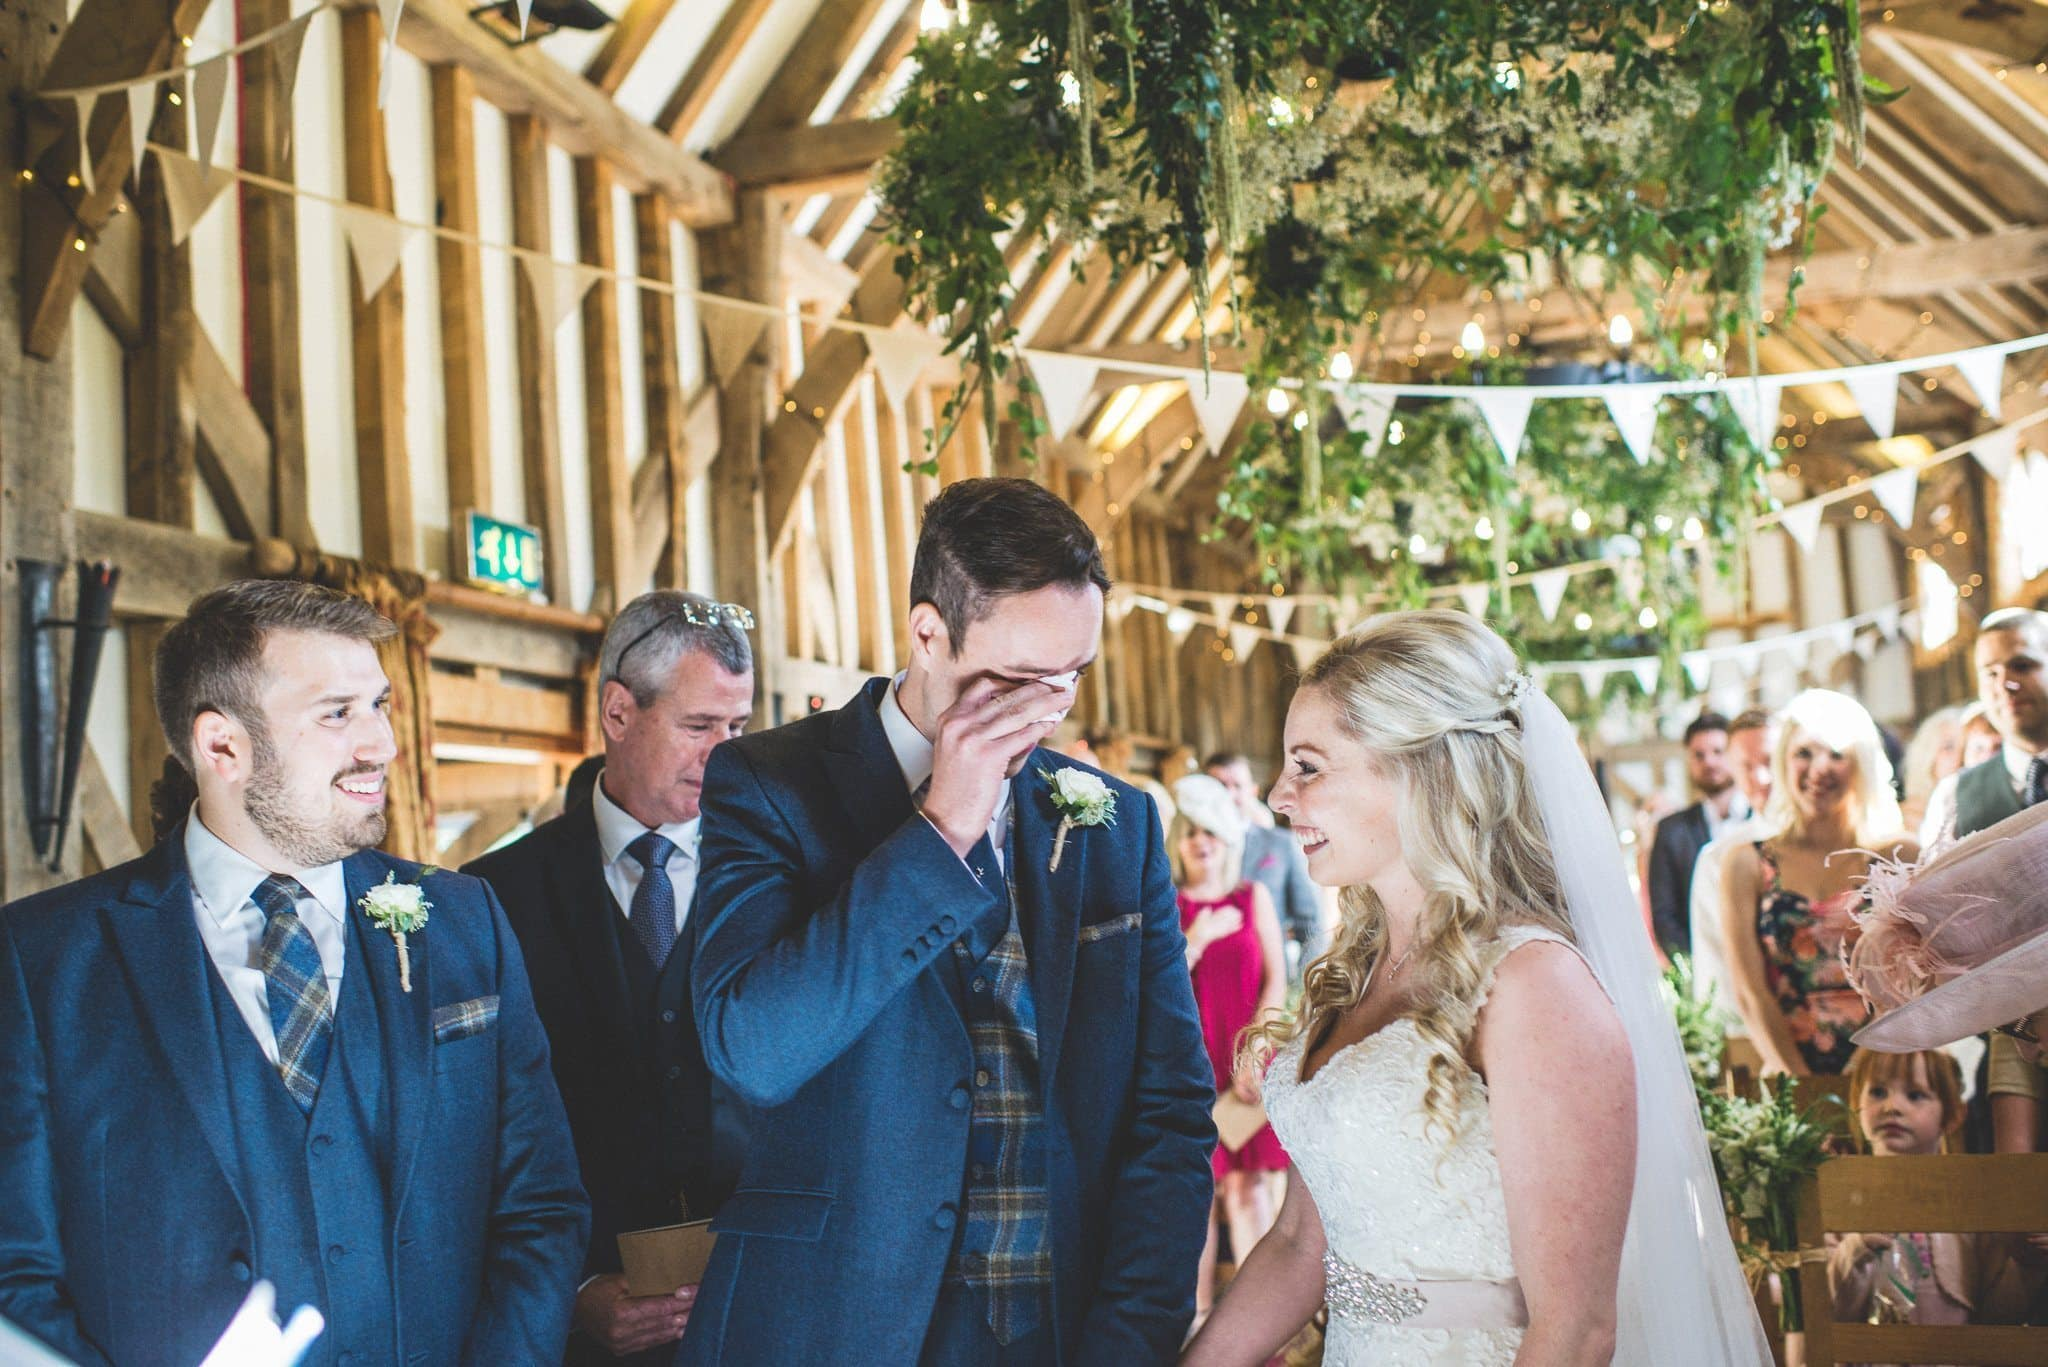 Emotional Groom as the bride reaches the end of the aisle